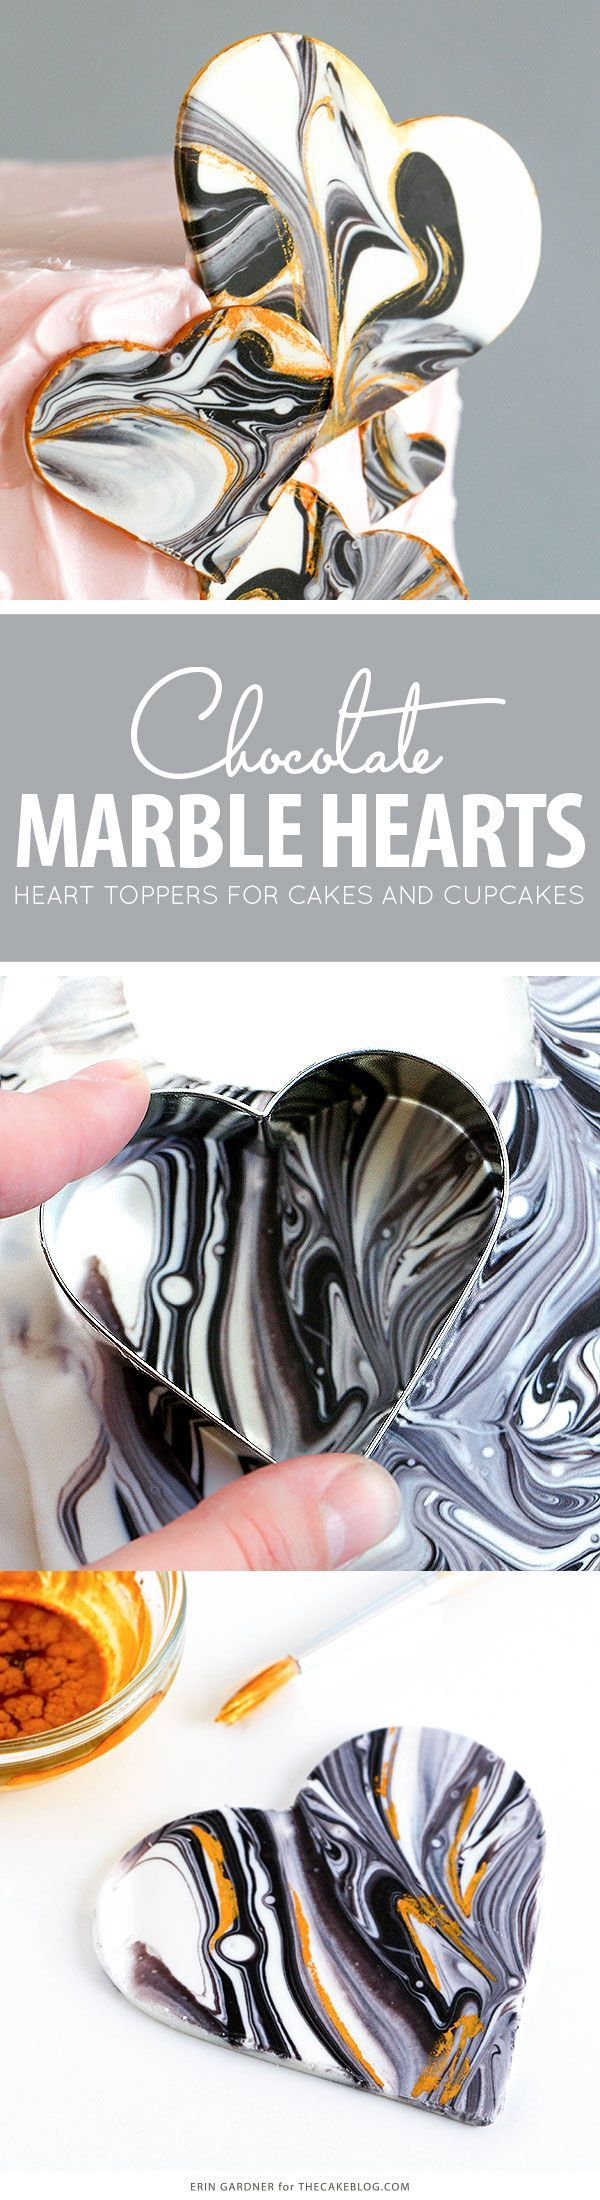 Marble Chocolate Hearts - how to make marbled heart toppers for cakes and cupcakes using chocolate coating and cookie cutters   by Erin Gardner for http://TheCakeBlog.com